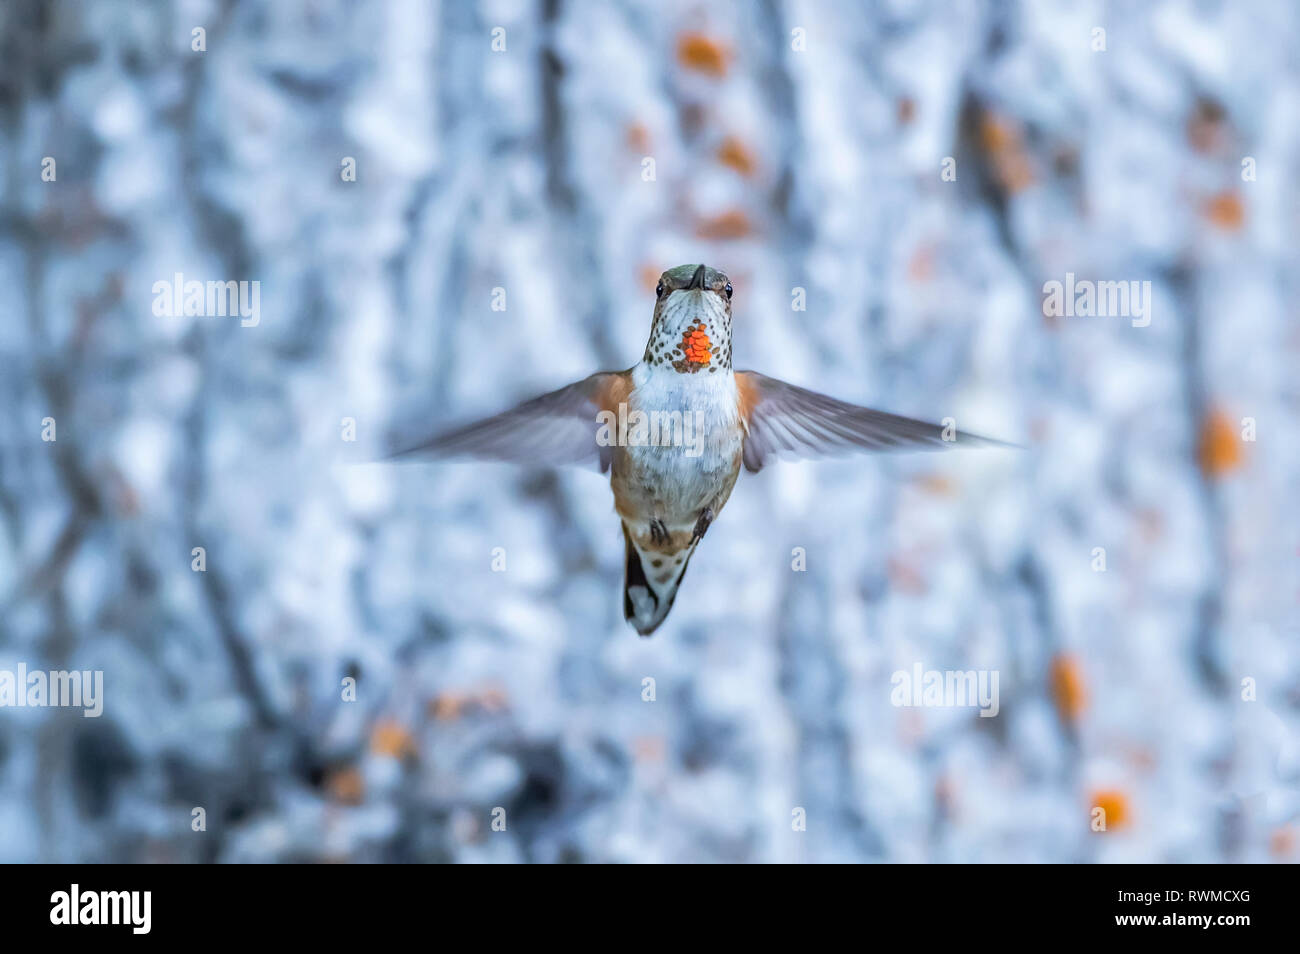 Rufous hummingbird (Selasphorus rufus) flying in mid-air; Atlin, British Columbia, Canada Stock Photo